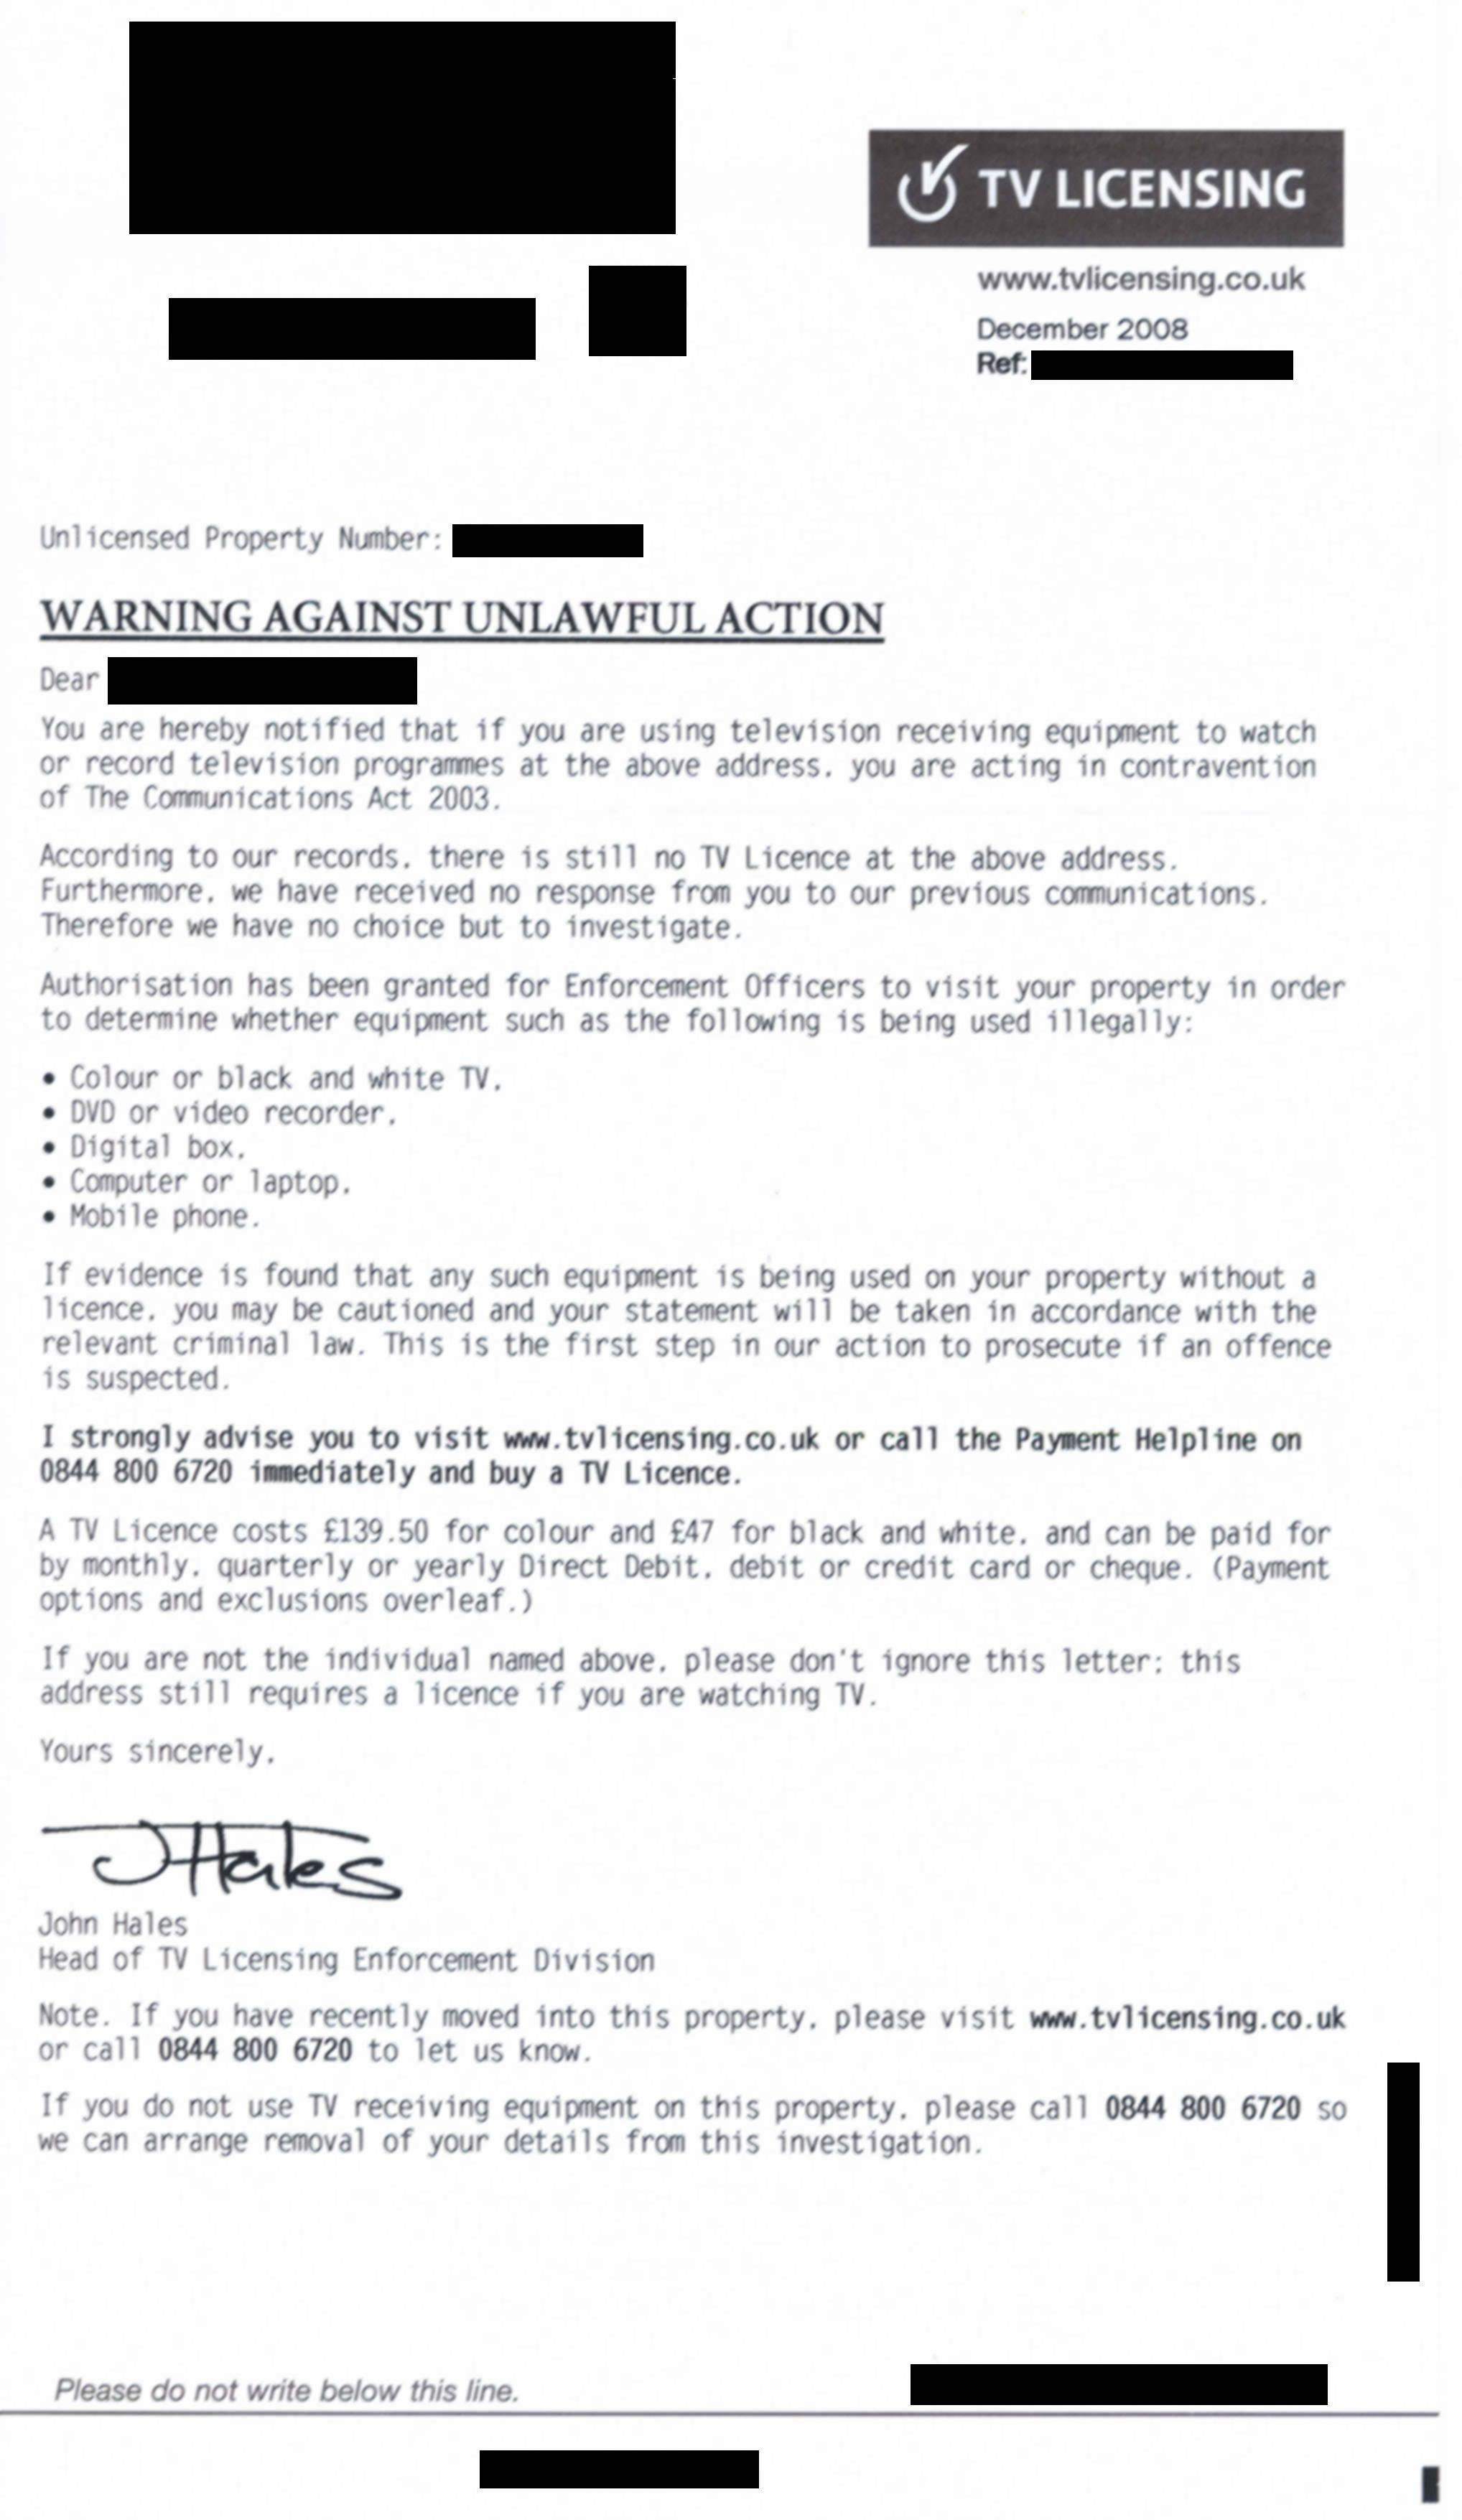 Warning against unlawful action